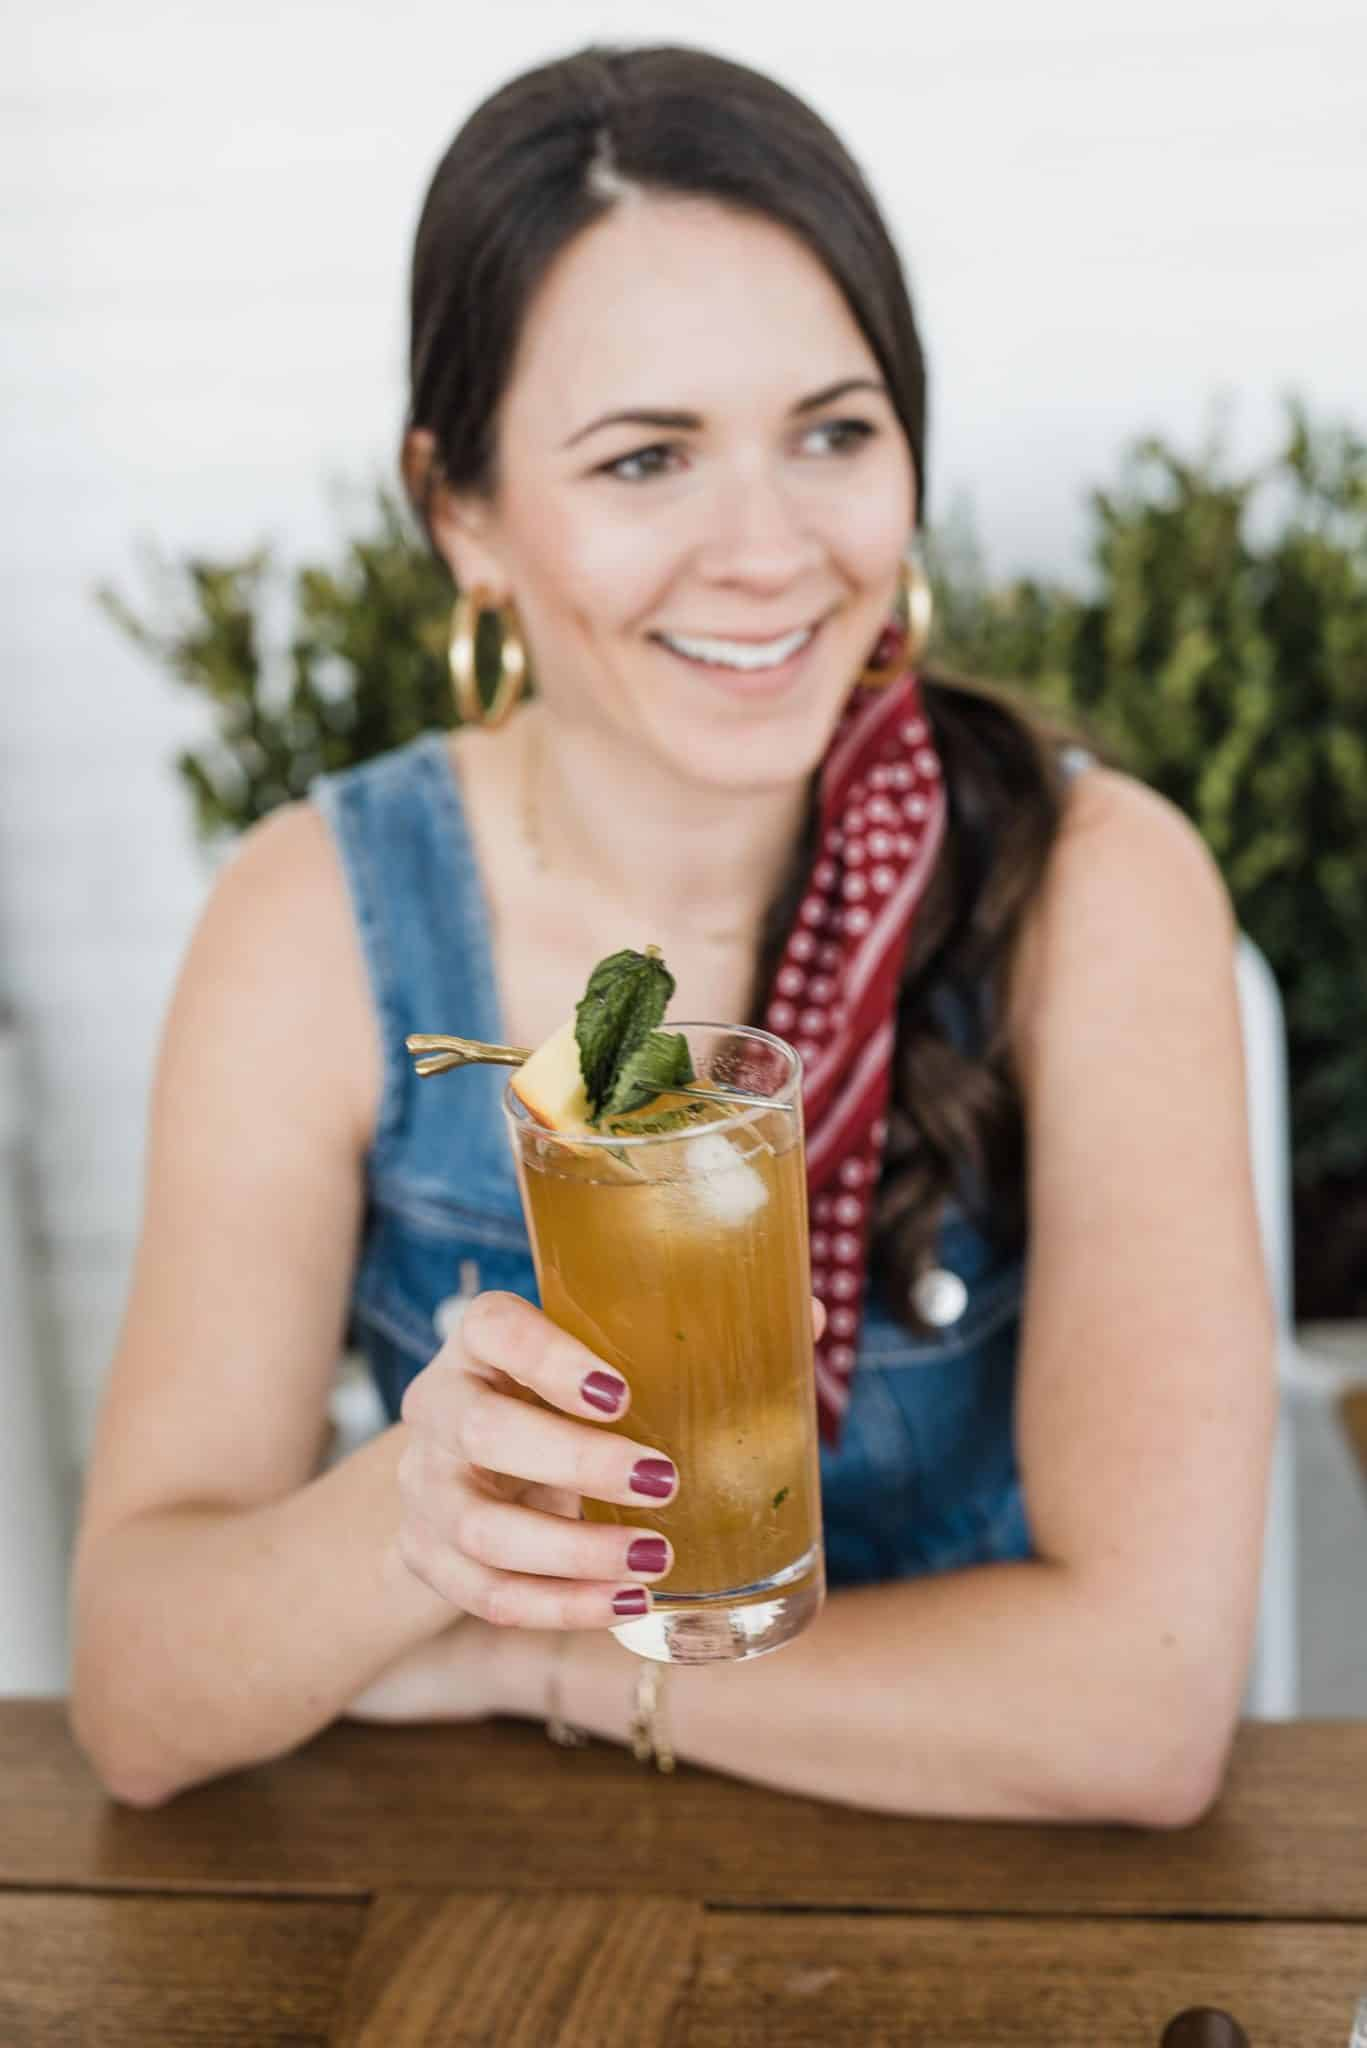 My Style Vita Is Sharing A Peach Mint Smash Cocktail Recipe With Coopers' Craft Bourbon